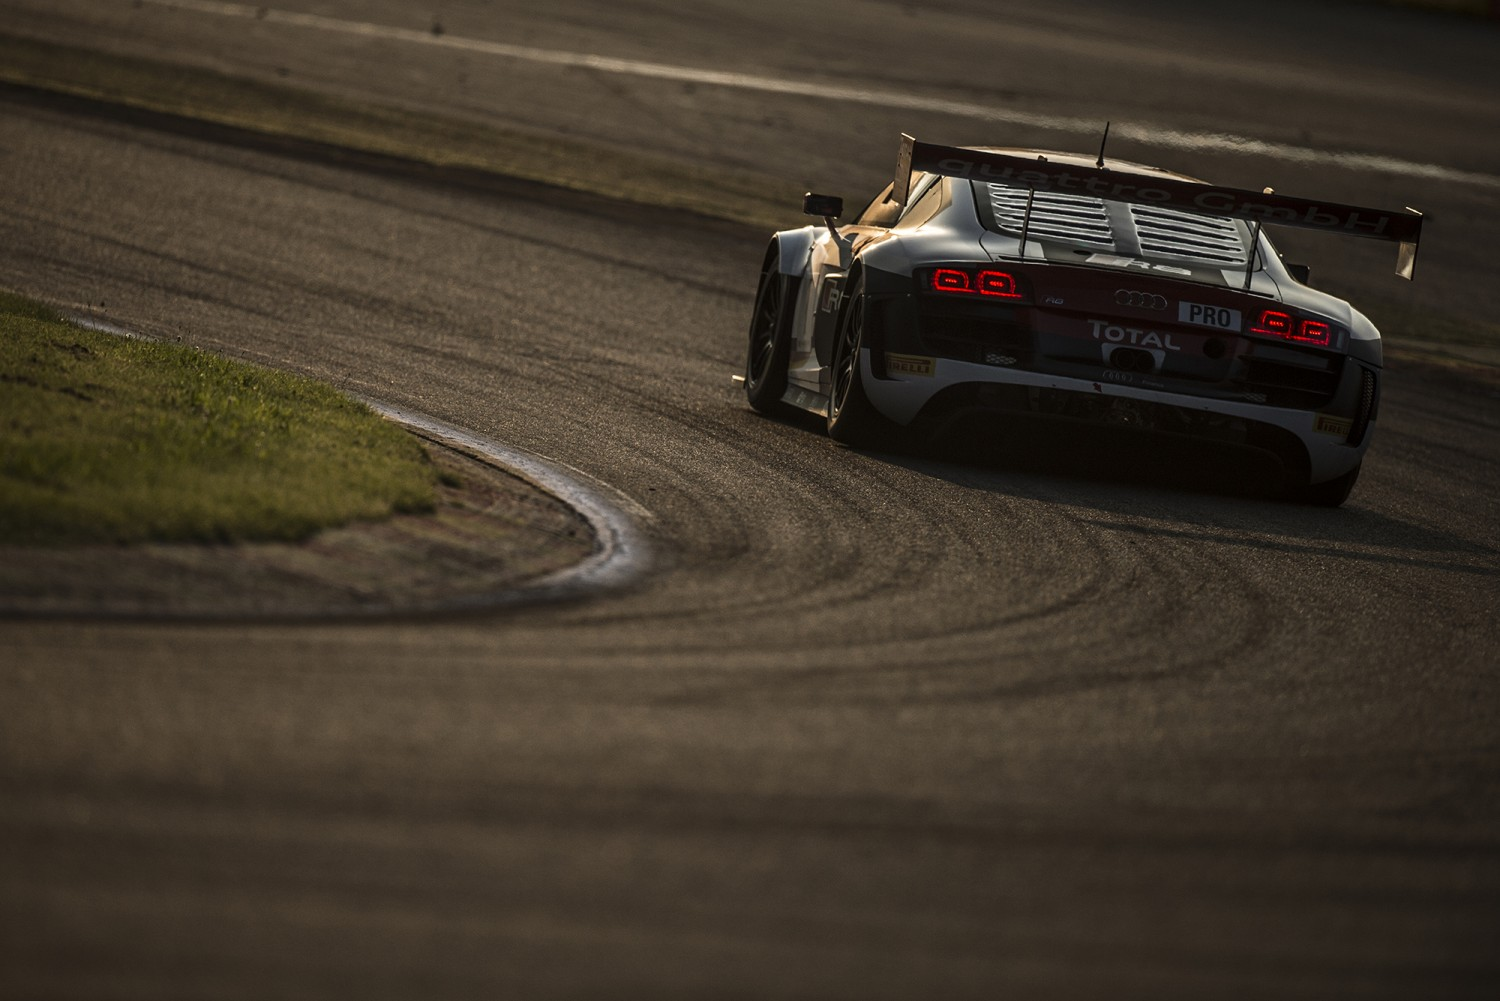 Sole Marc VDS BMW still taking on three WRT Audis